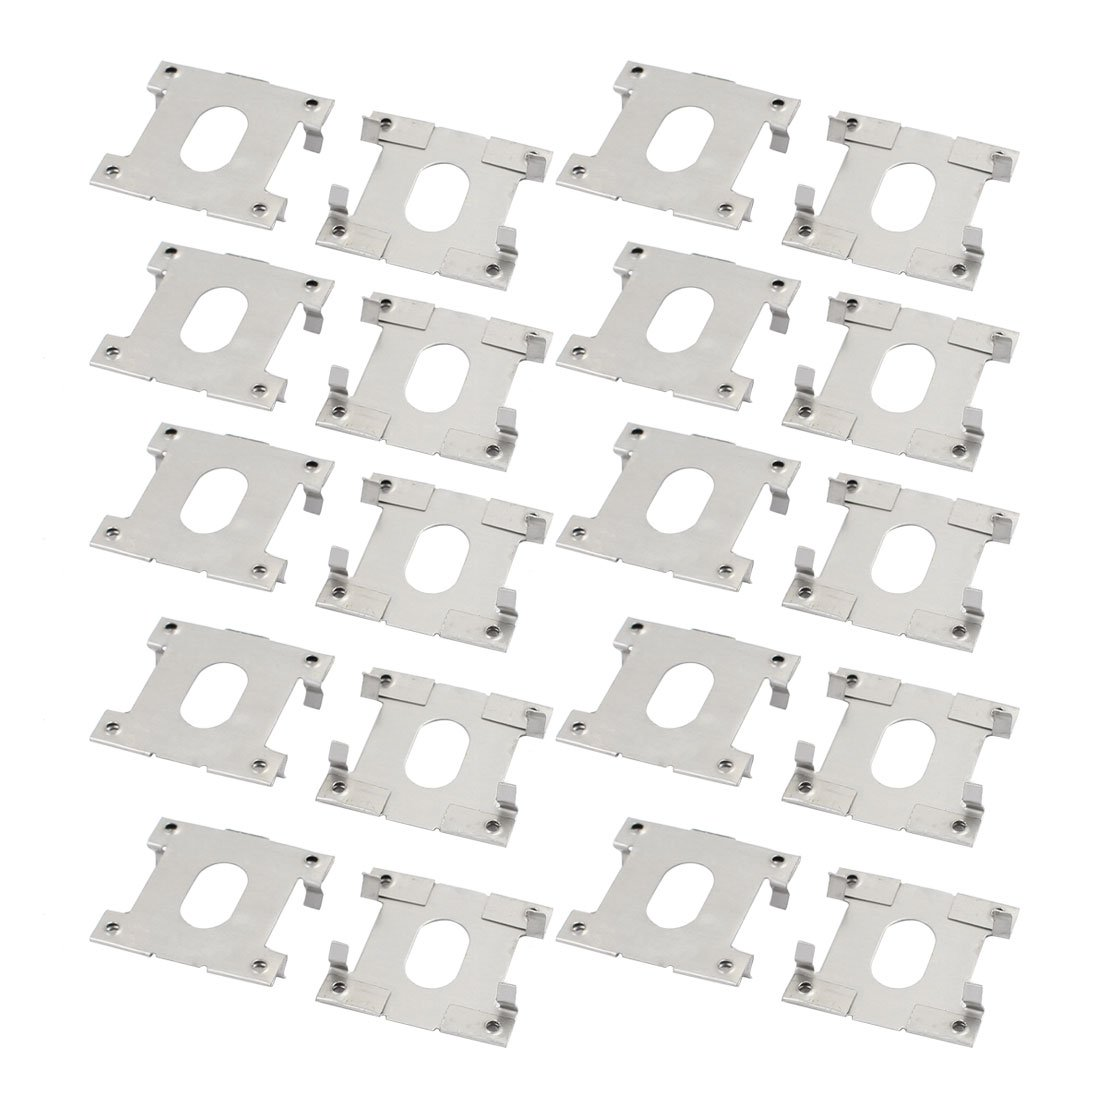 uxcell 20pcs 32mm x 30mm Stainless Steel Solar Conducting Strip Roof Mounting Bracket